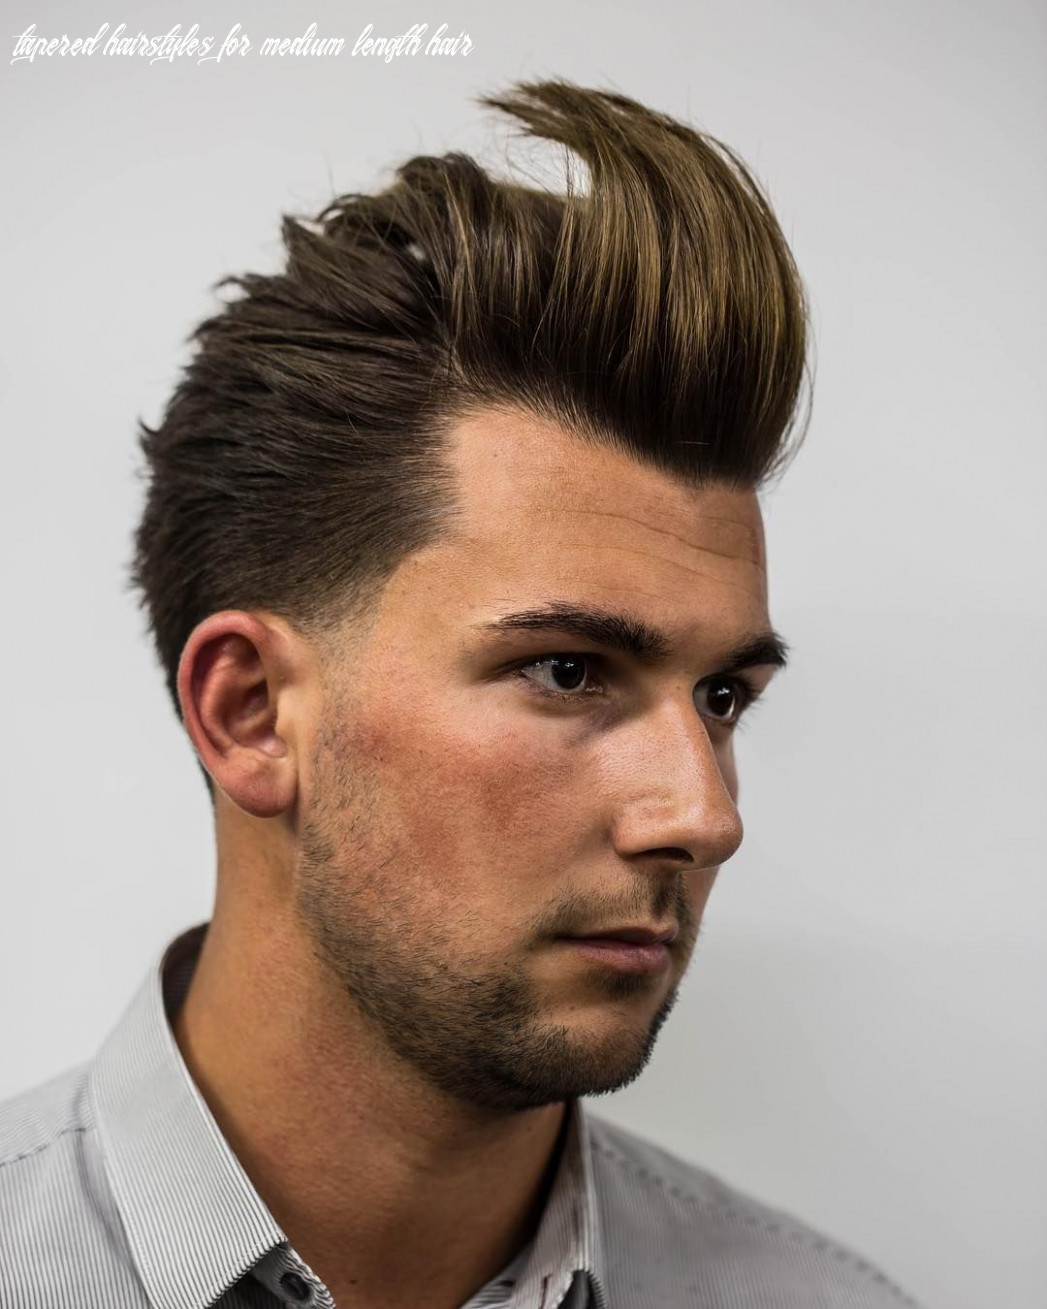 Pin on mens hairstyles tapered hairstyles for medium length hair